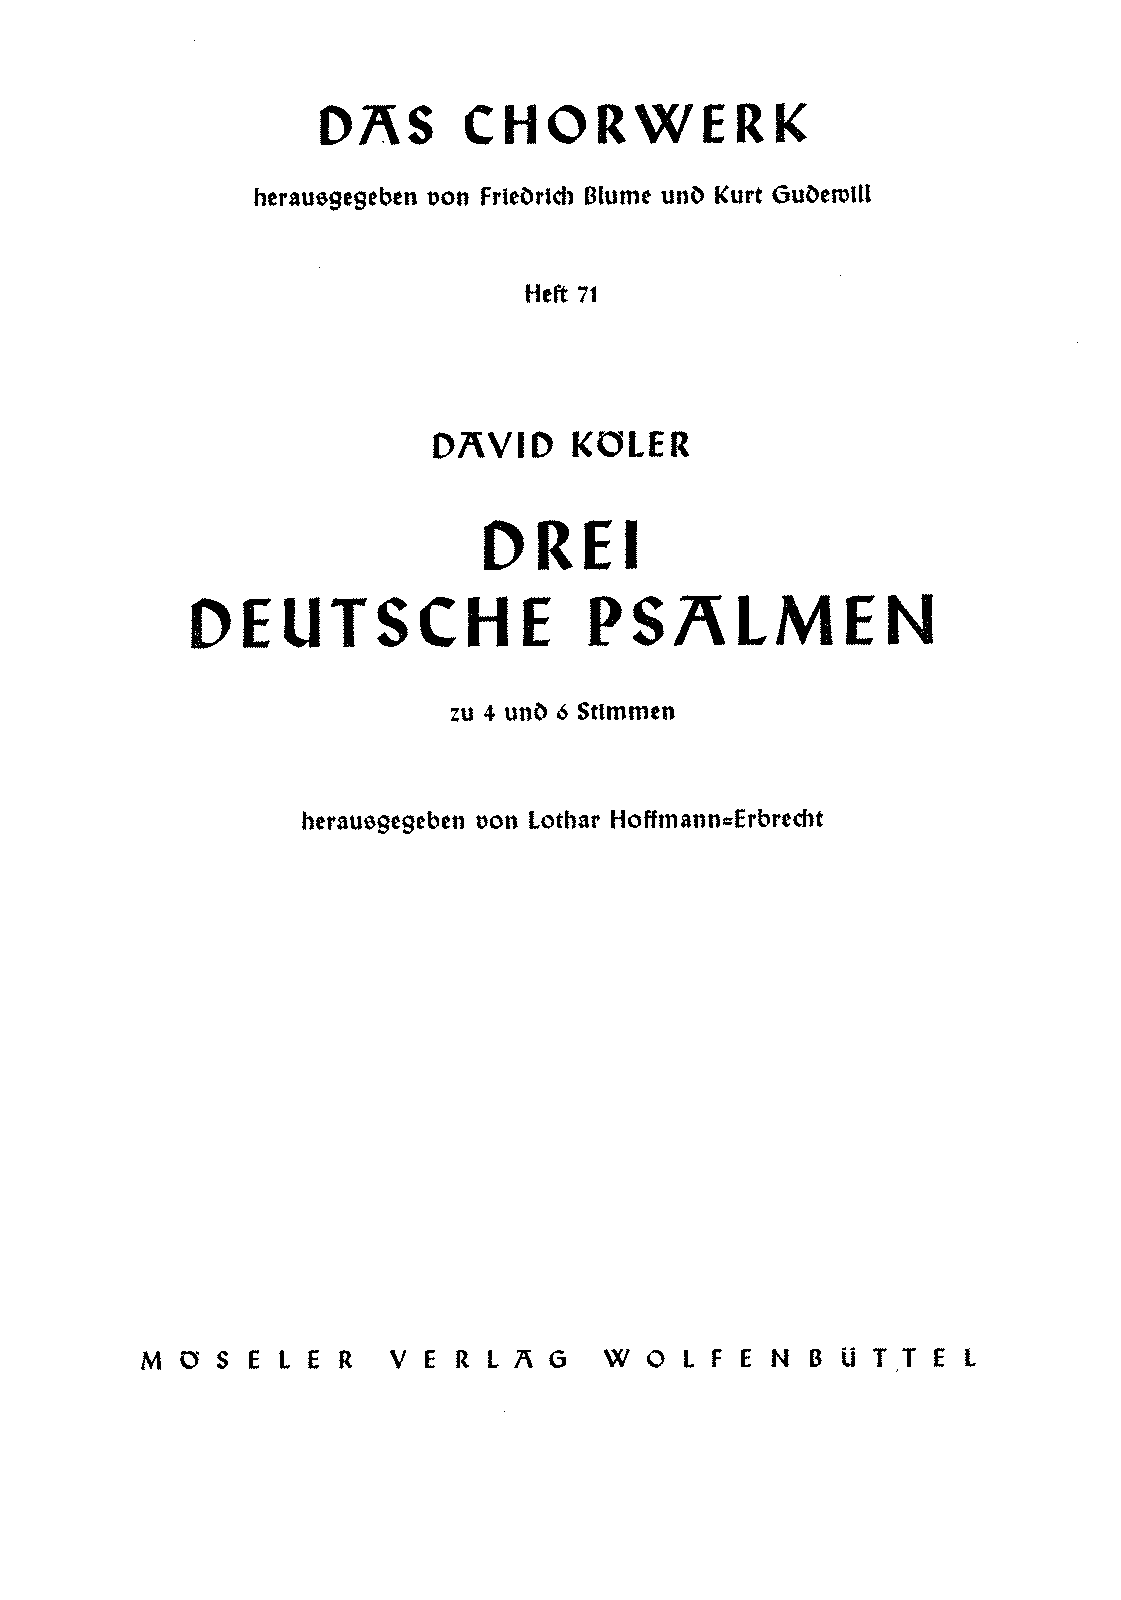 PMLP112006-Das Chorwerk 071 - Koeler, David - 3 German Psalms.pdf